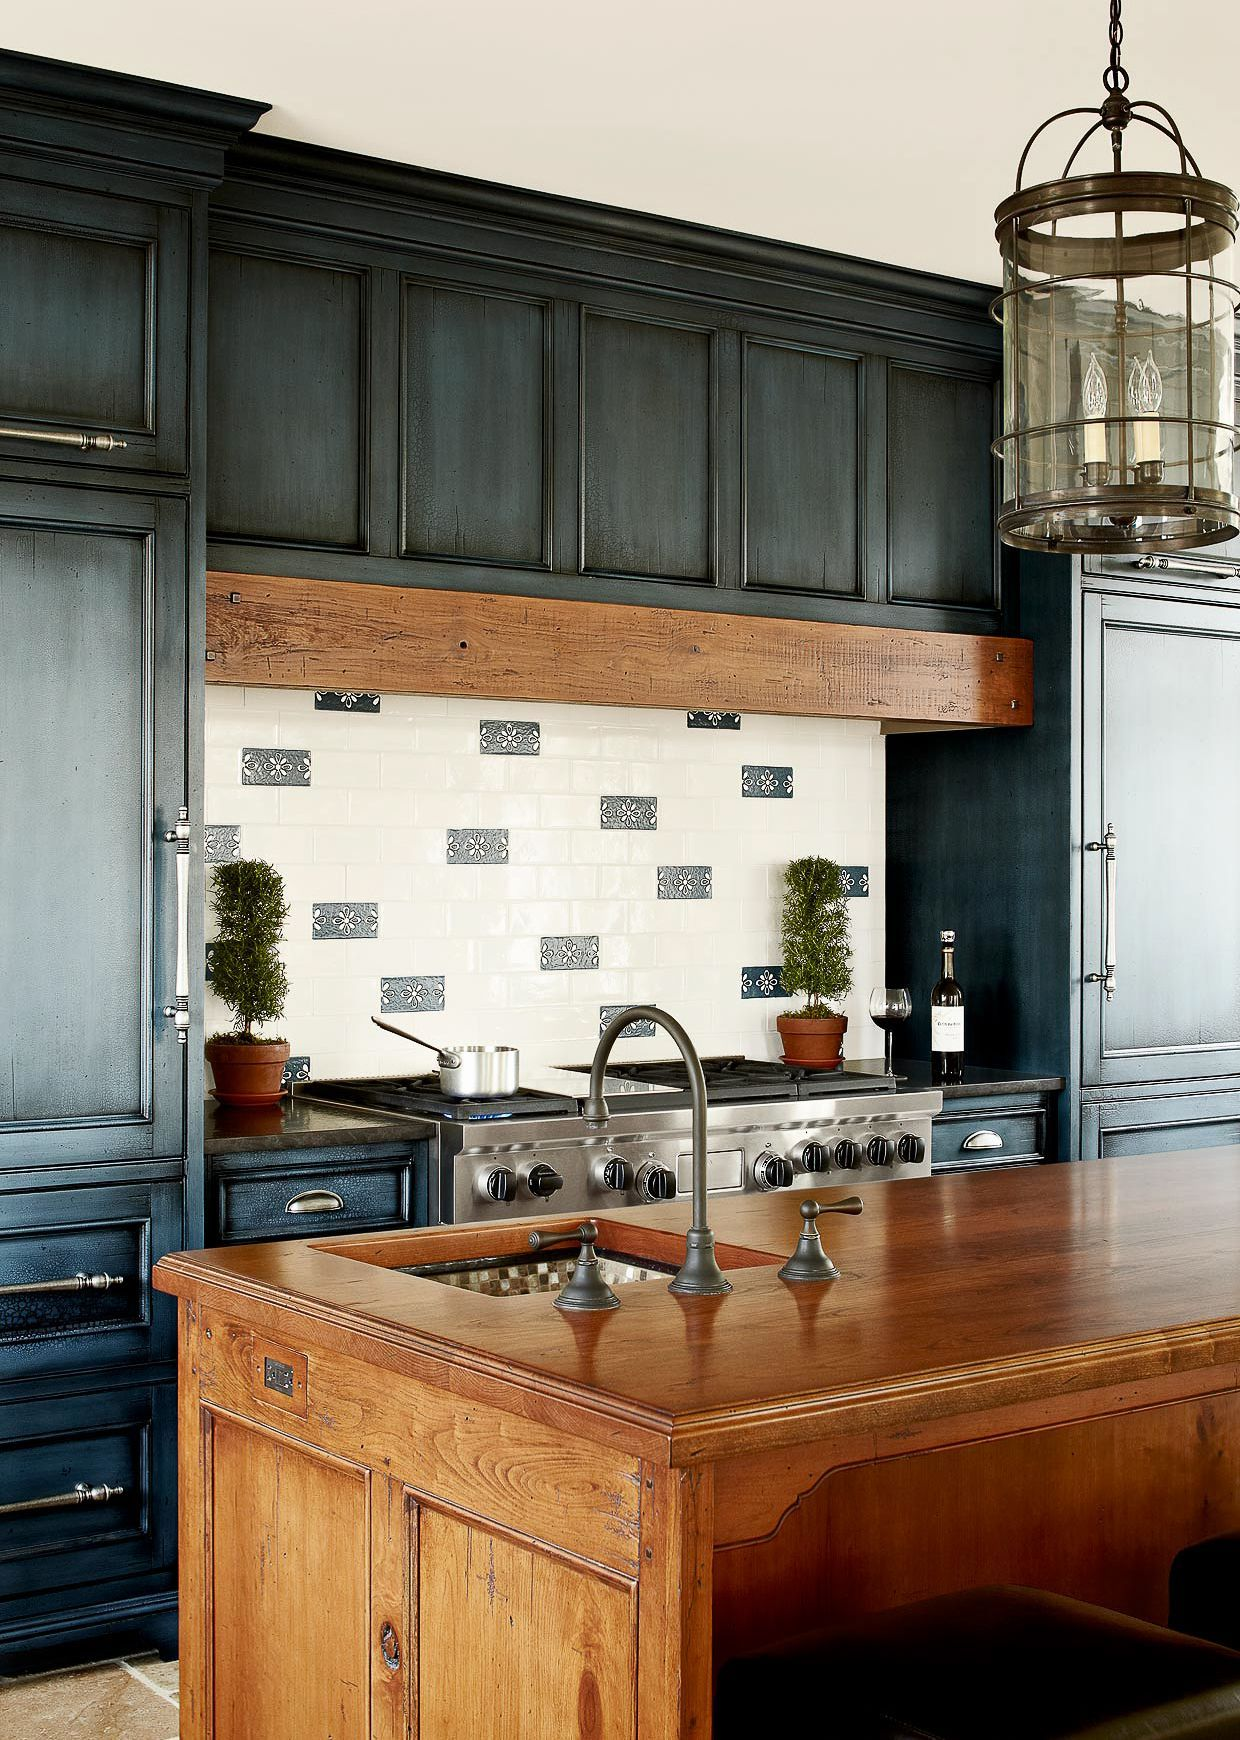 Distressed Kitchen Cabinets Painted Kitchen Cabinets Colors Navy Kitchen C In 2020 Distressed Kitchen Cabinets Painted Kitchen Cabinets Colors Distressed Kitchen